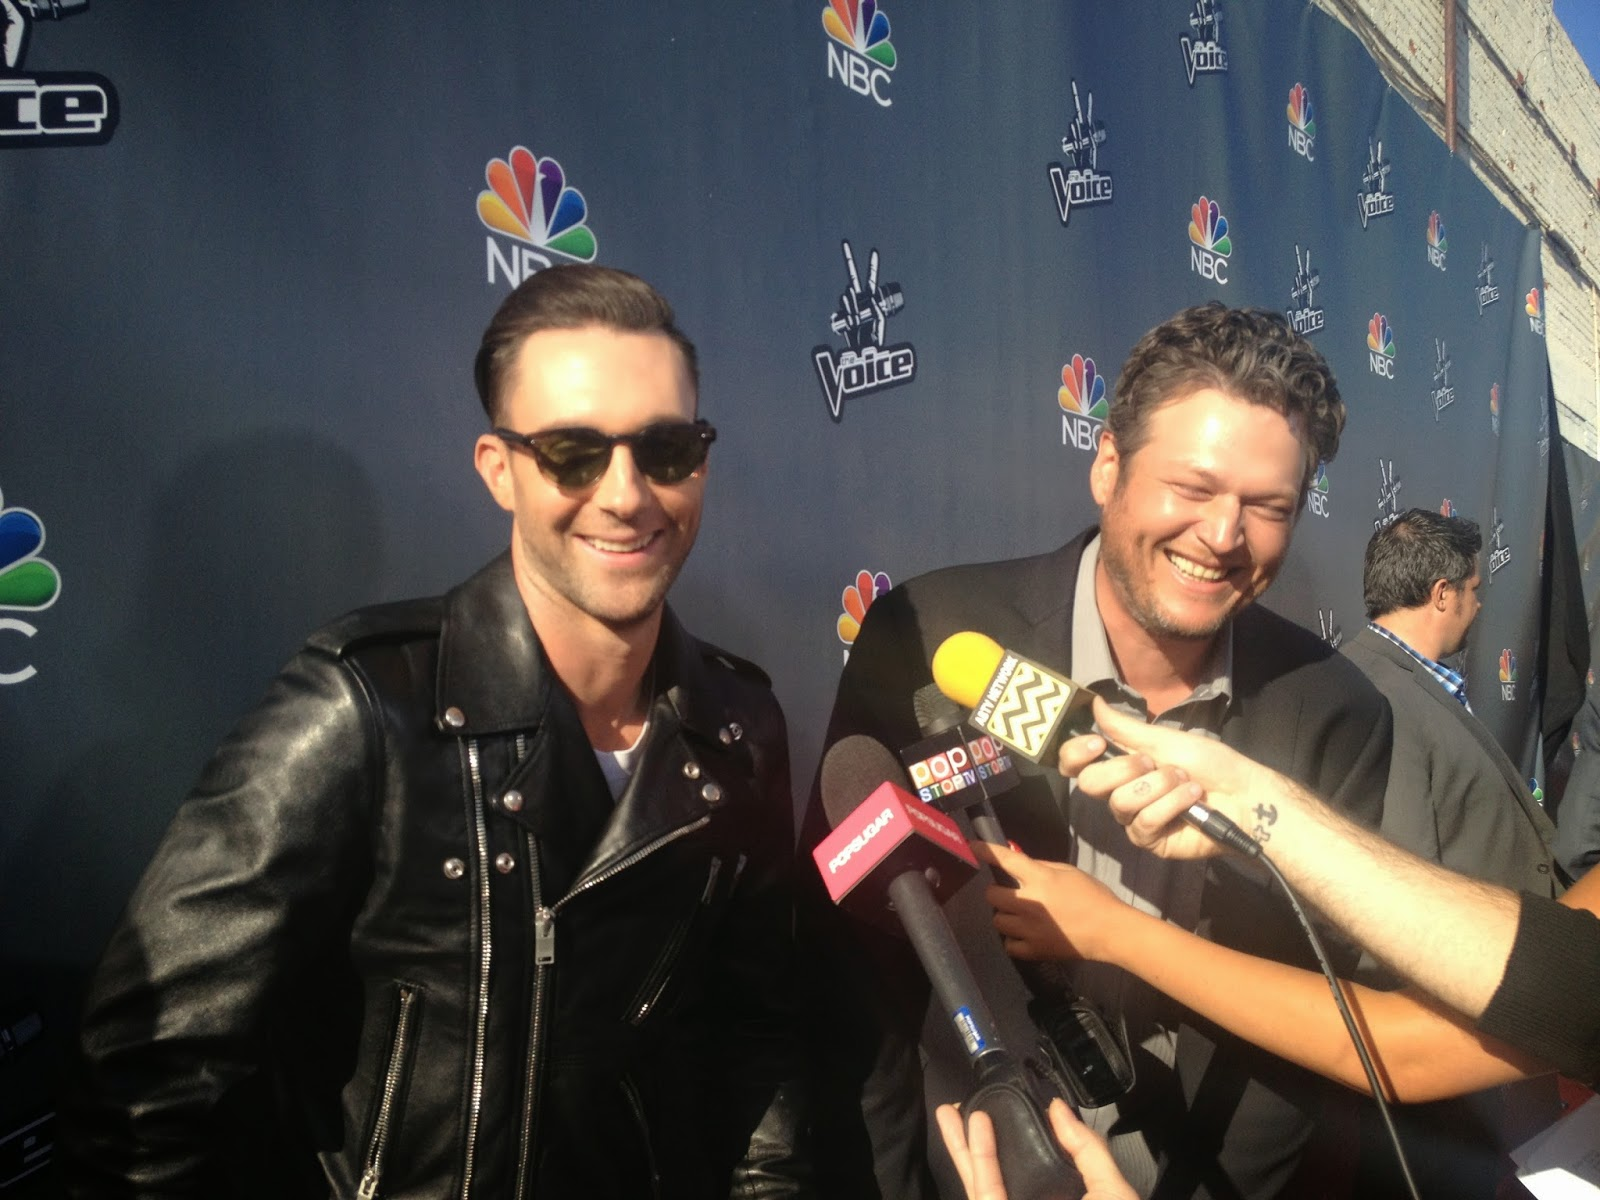 Adam Levine and Blake Shelton on the red carpet